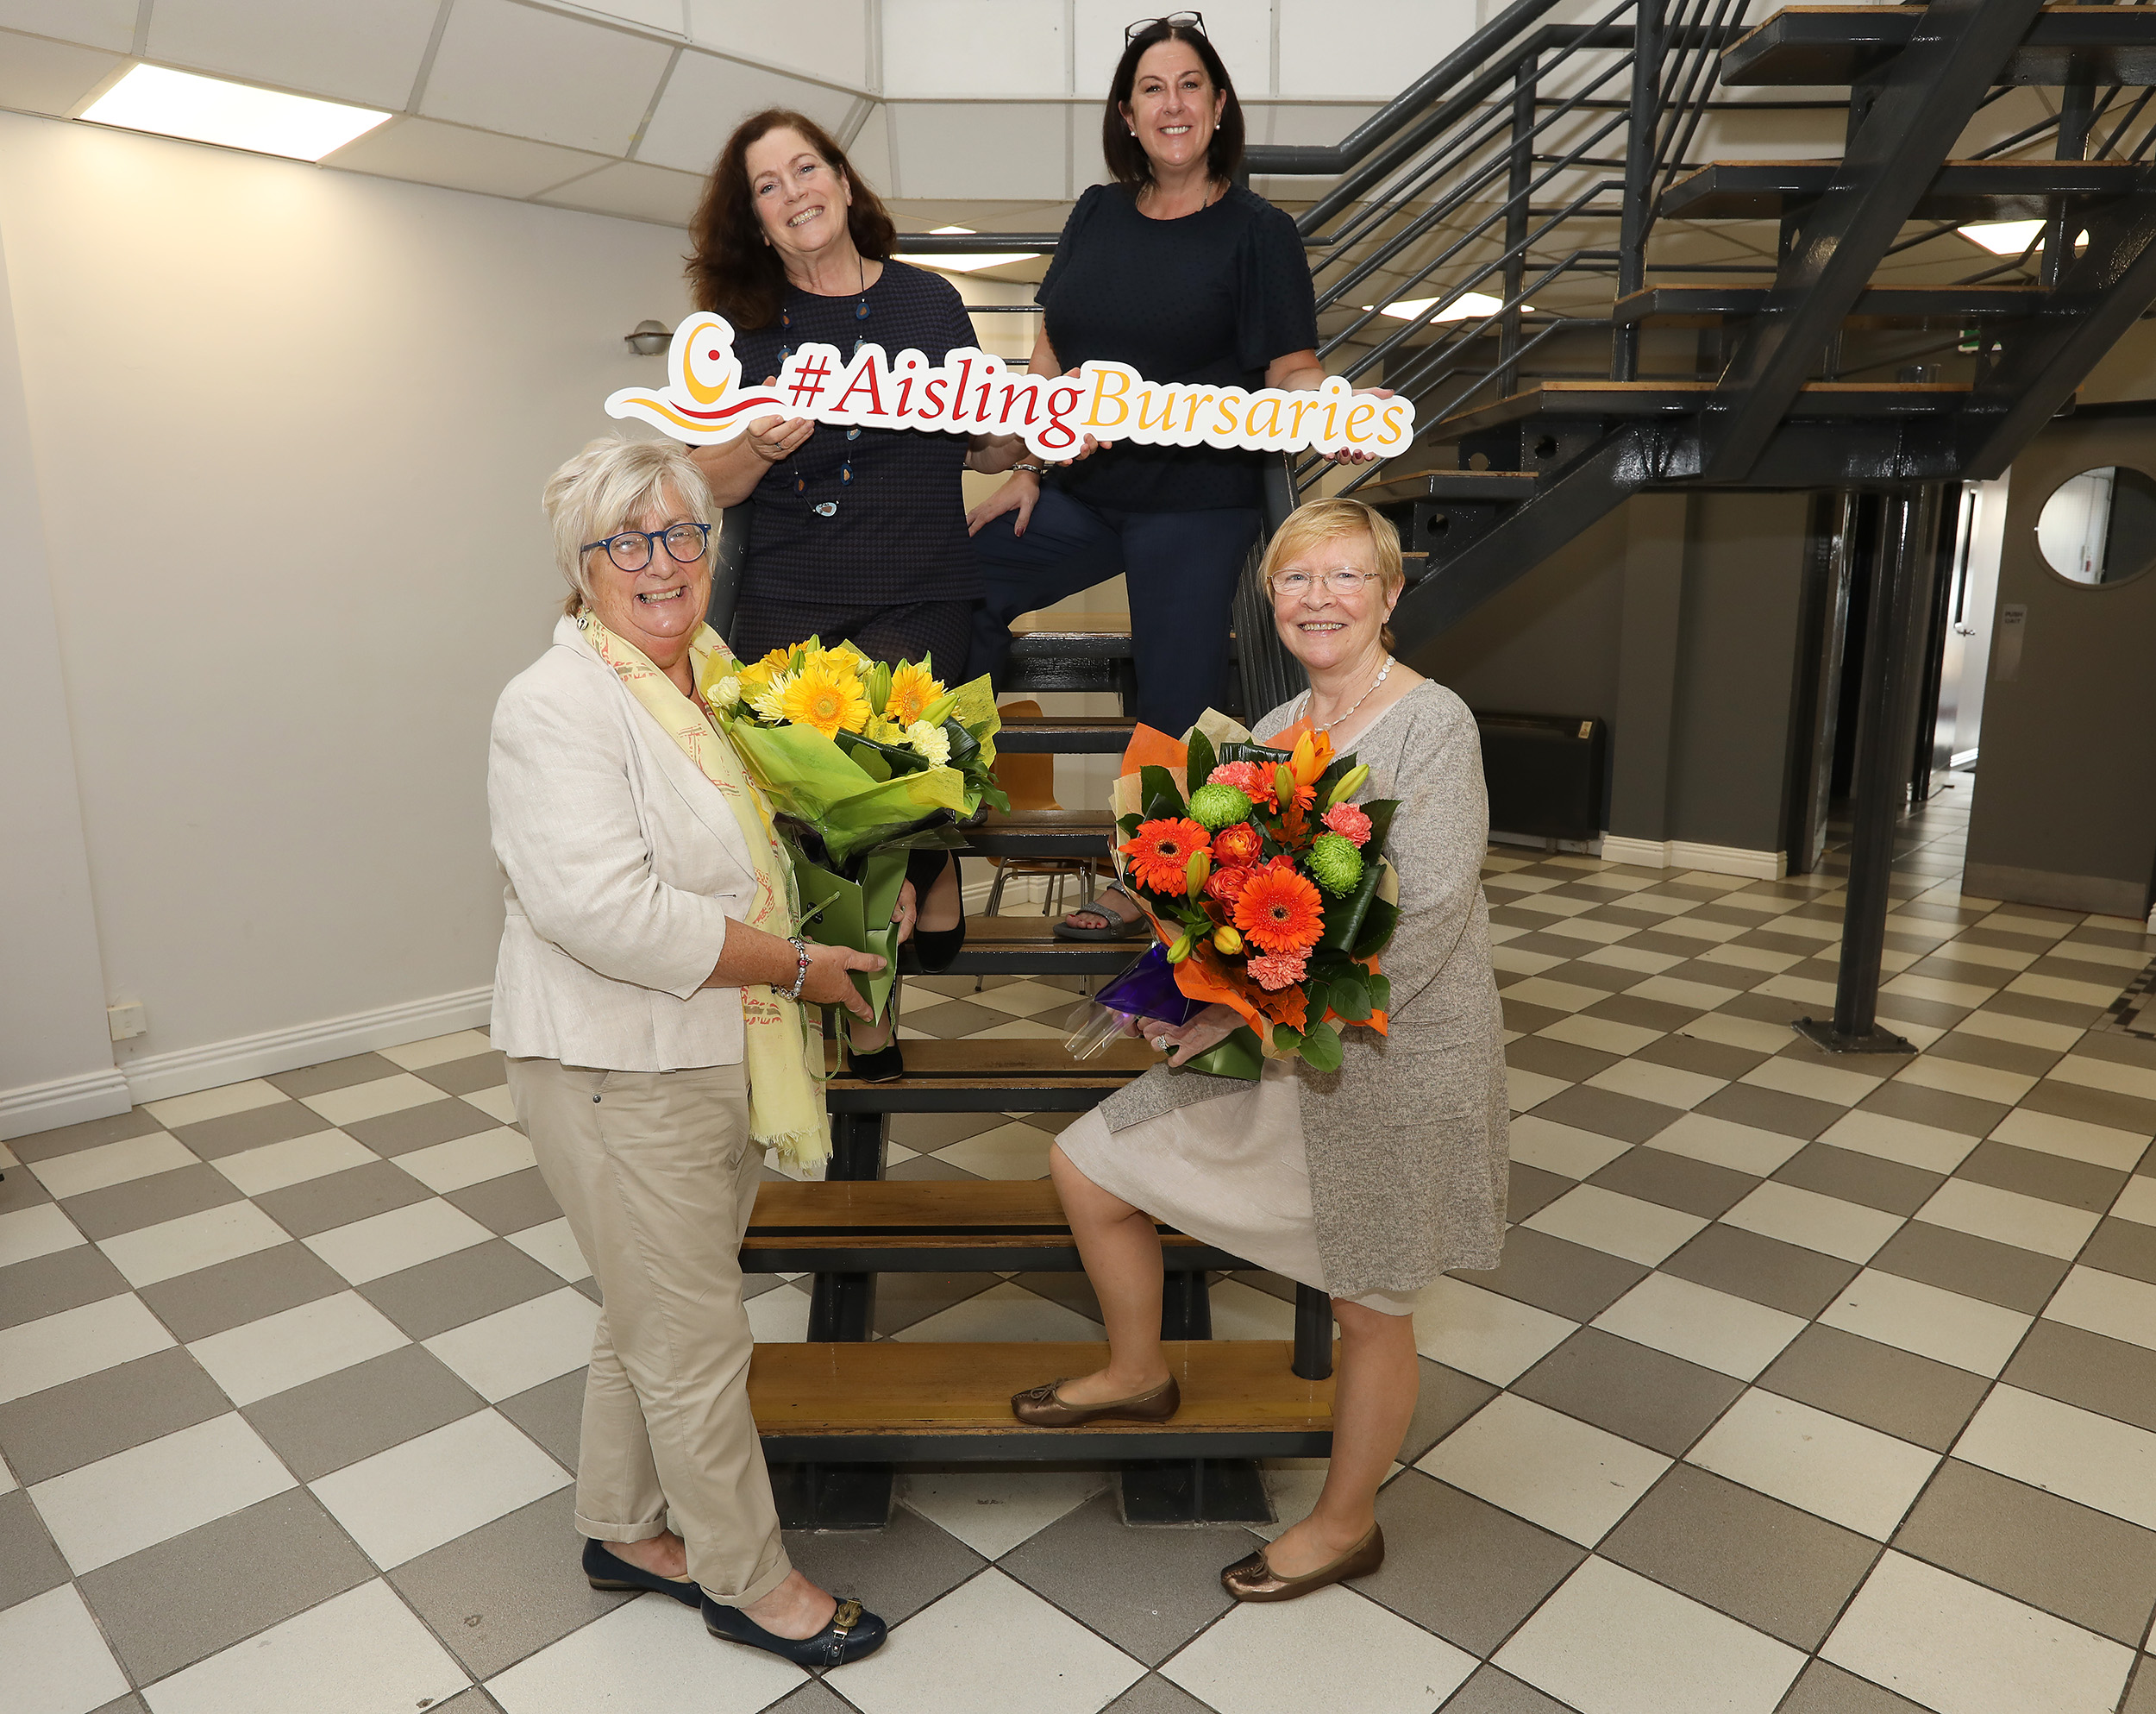 Aisling Bursary judges Monica Culbert and Eilish Rooney with Geraldine McAteer and Angie Mervyn from West Belfast Partnership Board.